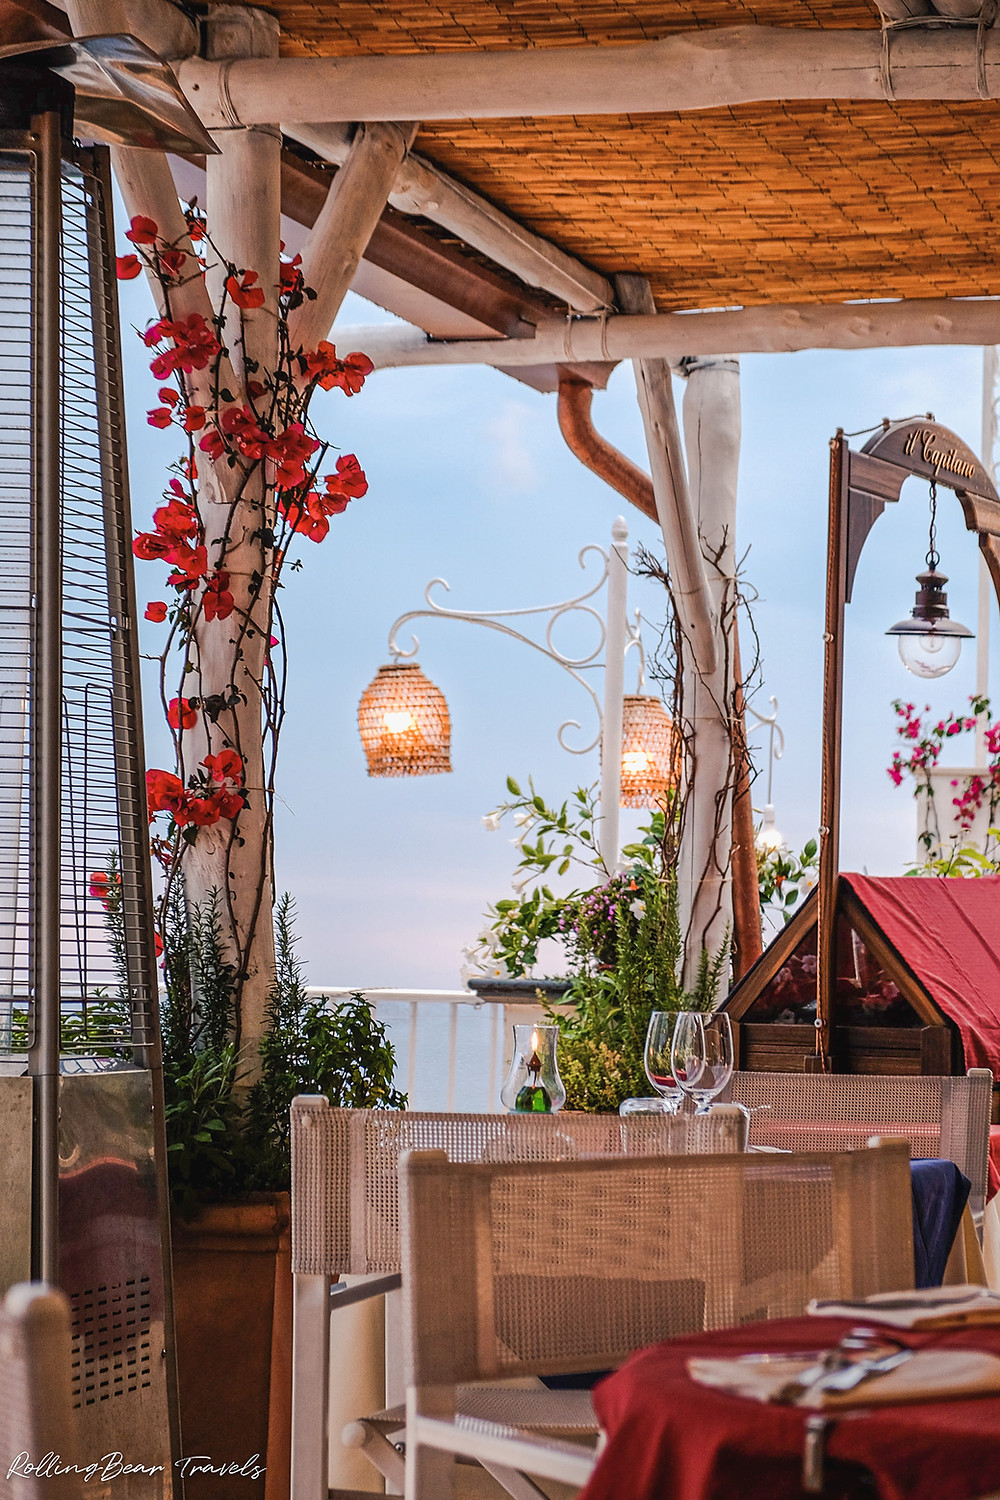 il Capitano restaurant review, Positano | RollingBear Travels.